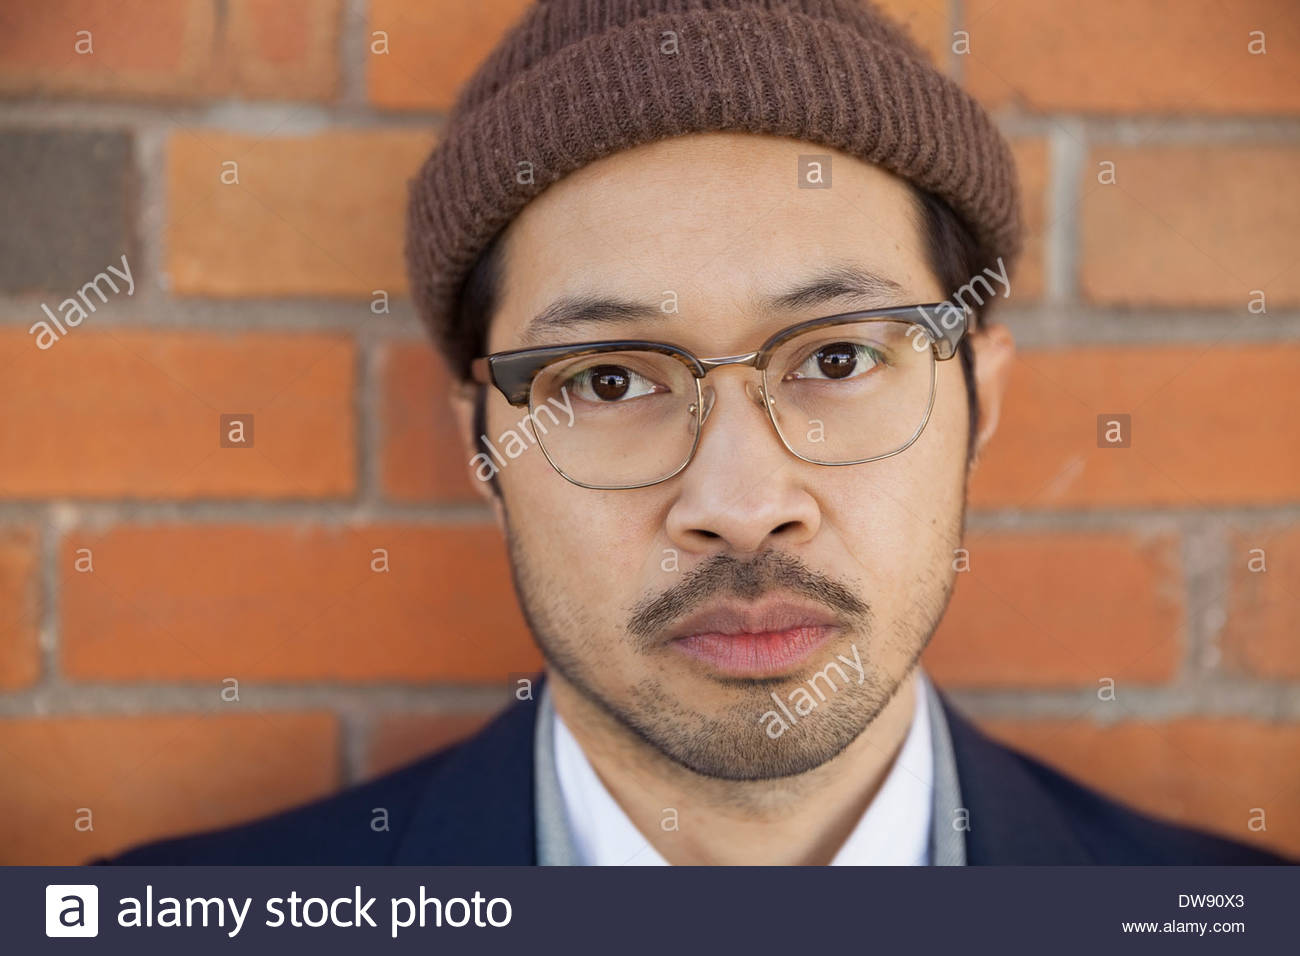 Close-up portrait of confident man against brick wall - Stock Image